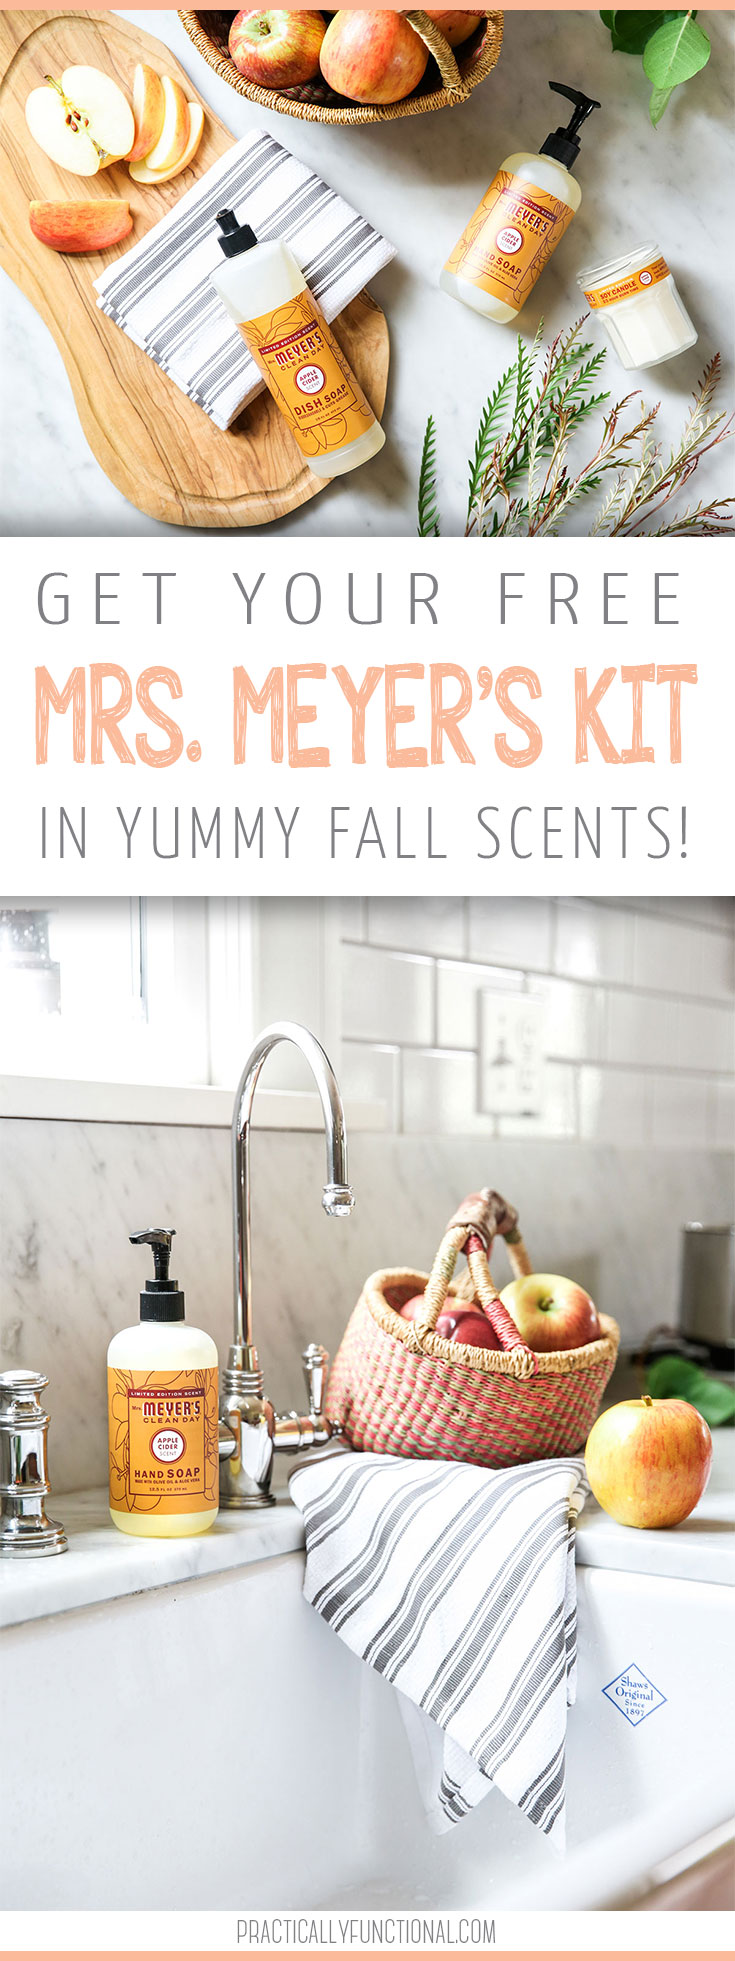 Mrs. Meyers's Fall Scents Kit